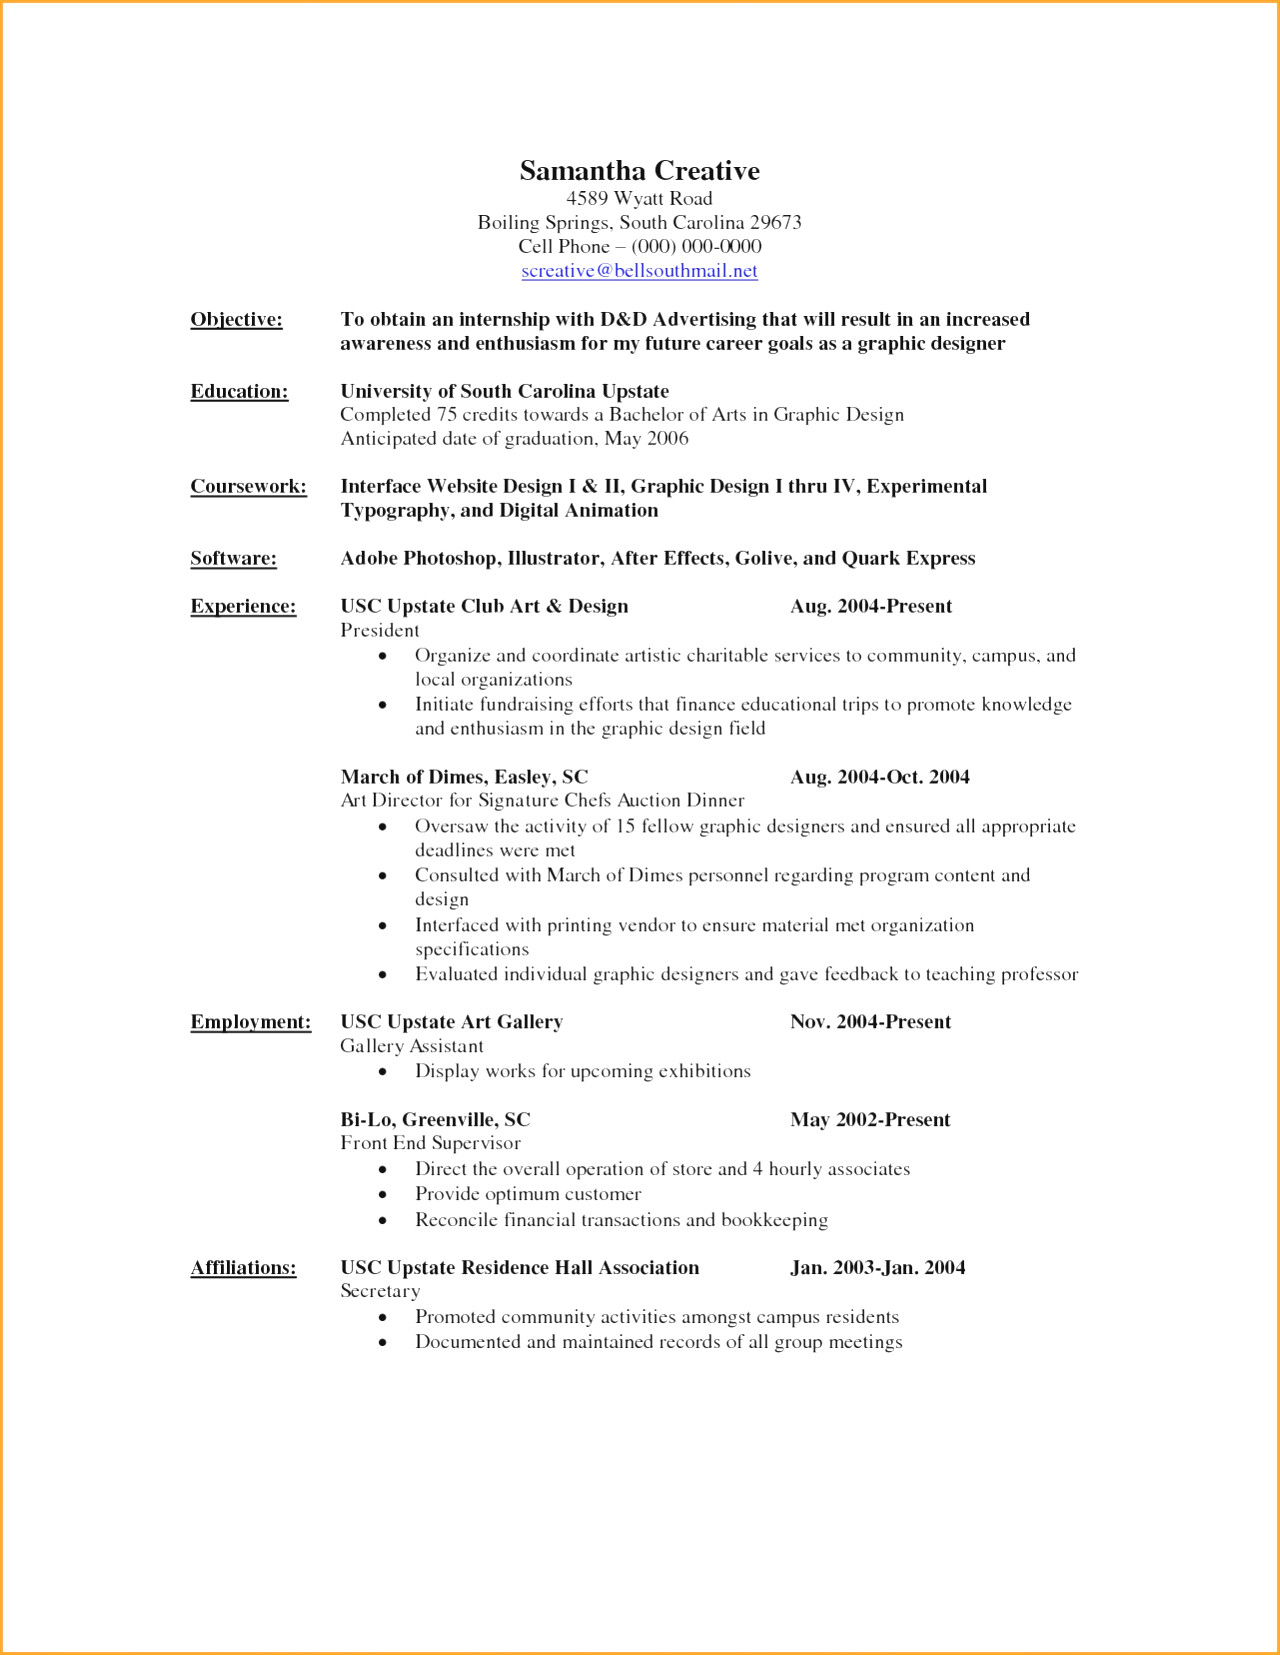 Bookkeeping Invoice Template 5   Colorium Laboratorium Intended For Bookkeeping Invoice Template